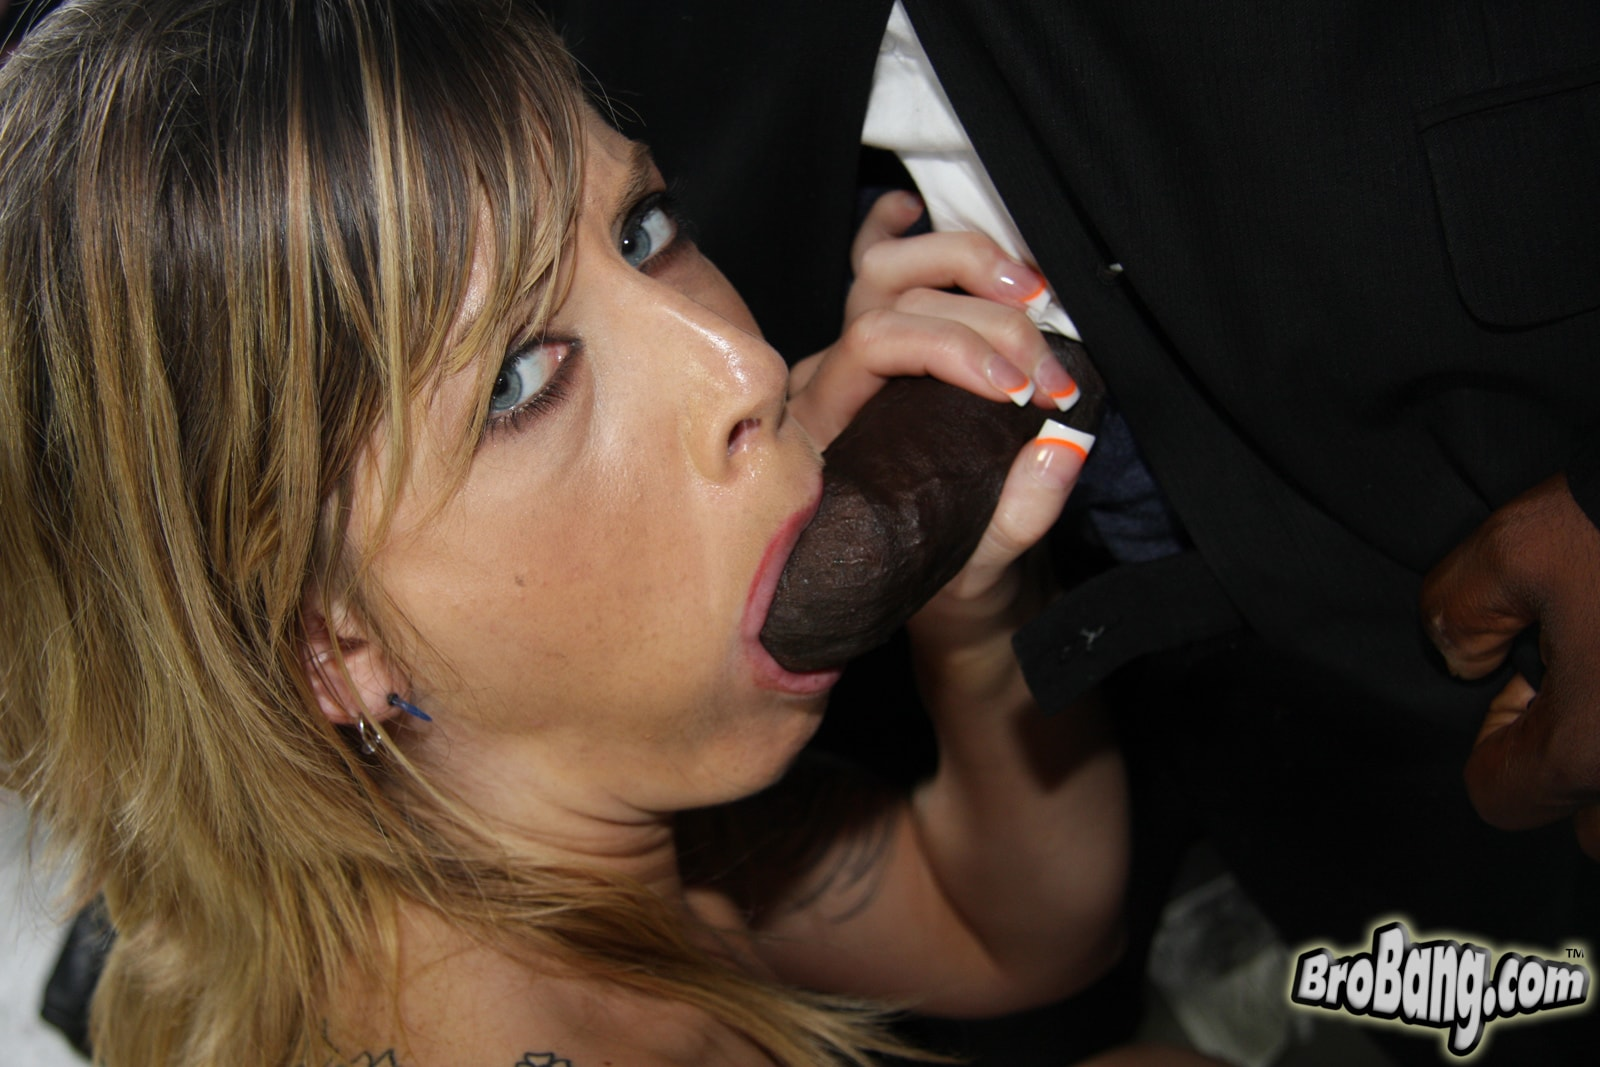 Dogfart 'Tricia Oaks - Interracial Blowbang' starring Tricia Oaks (photo 18)